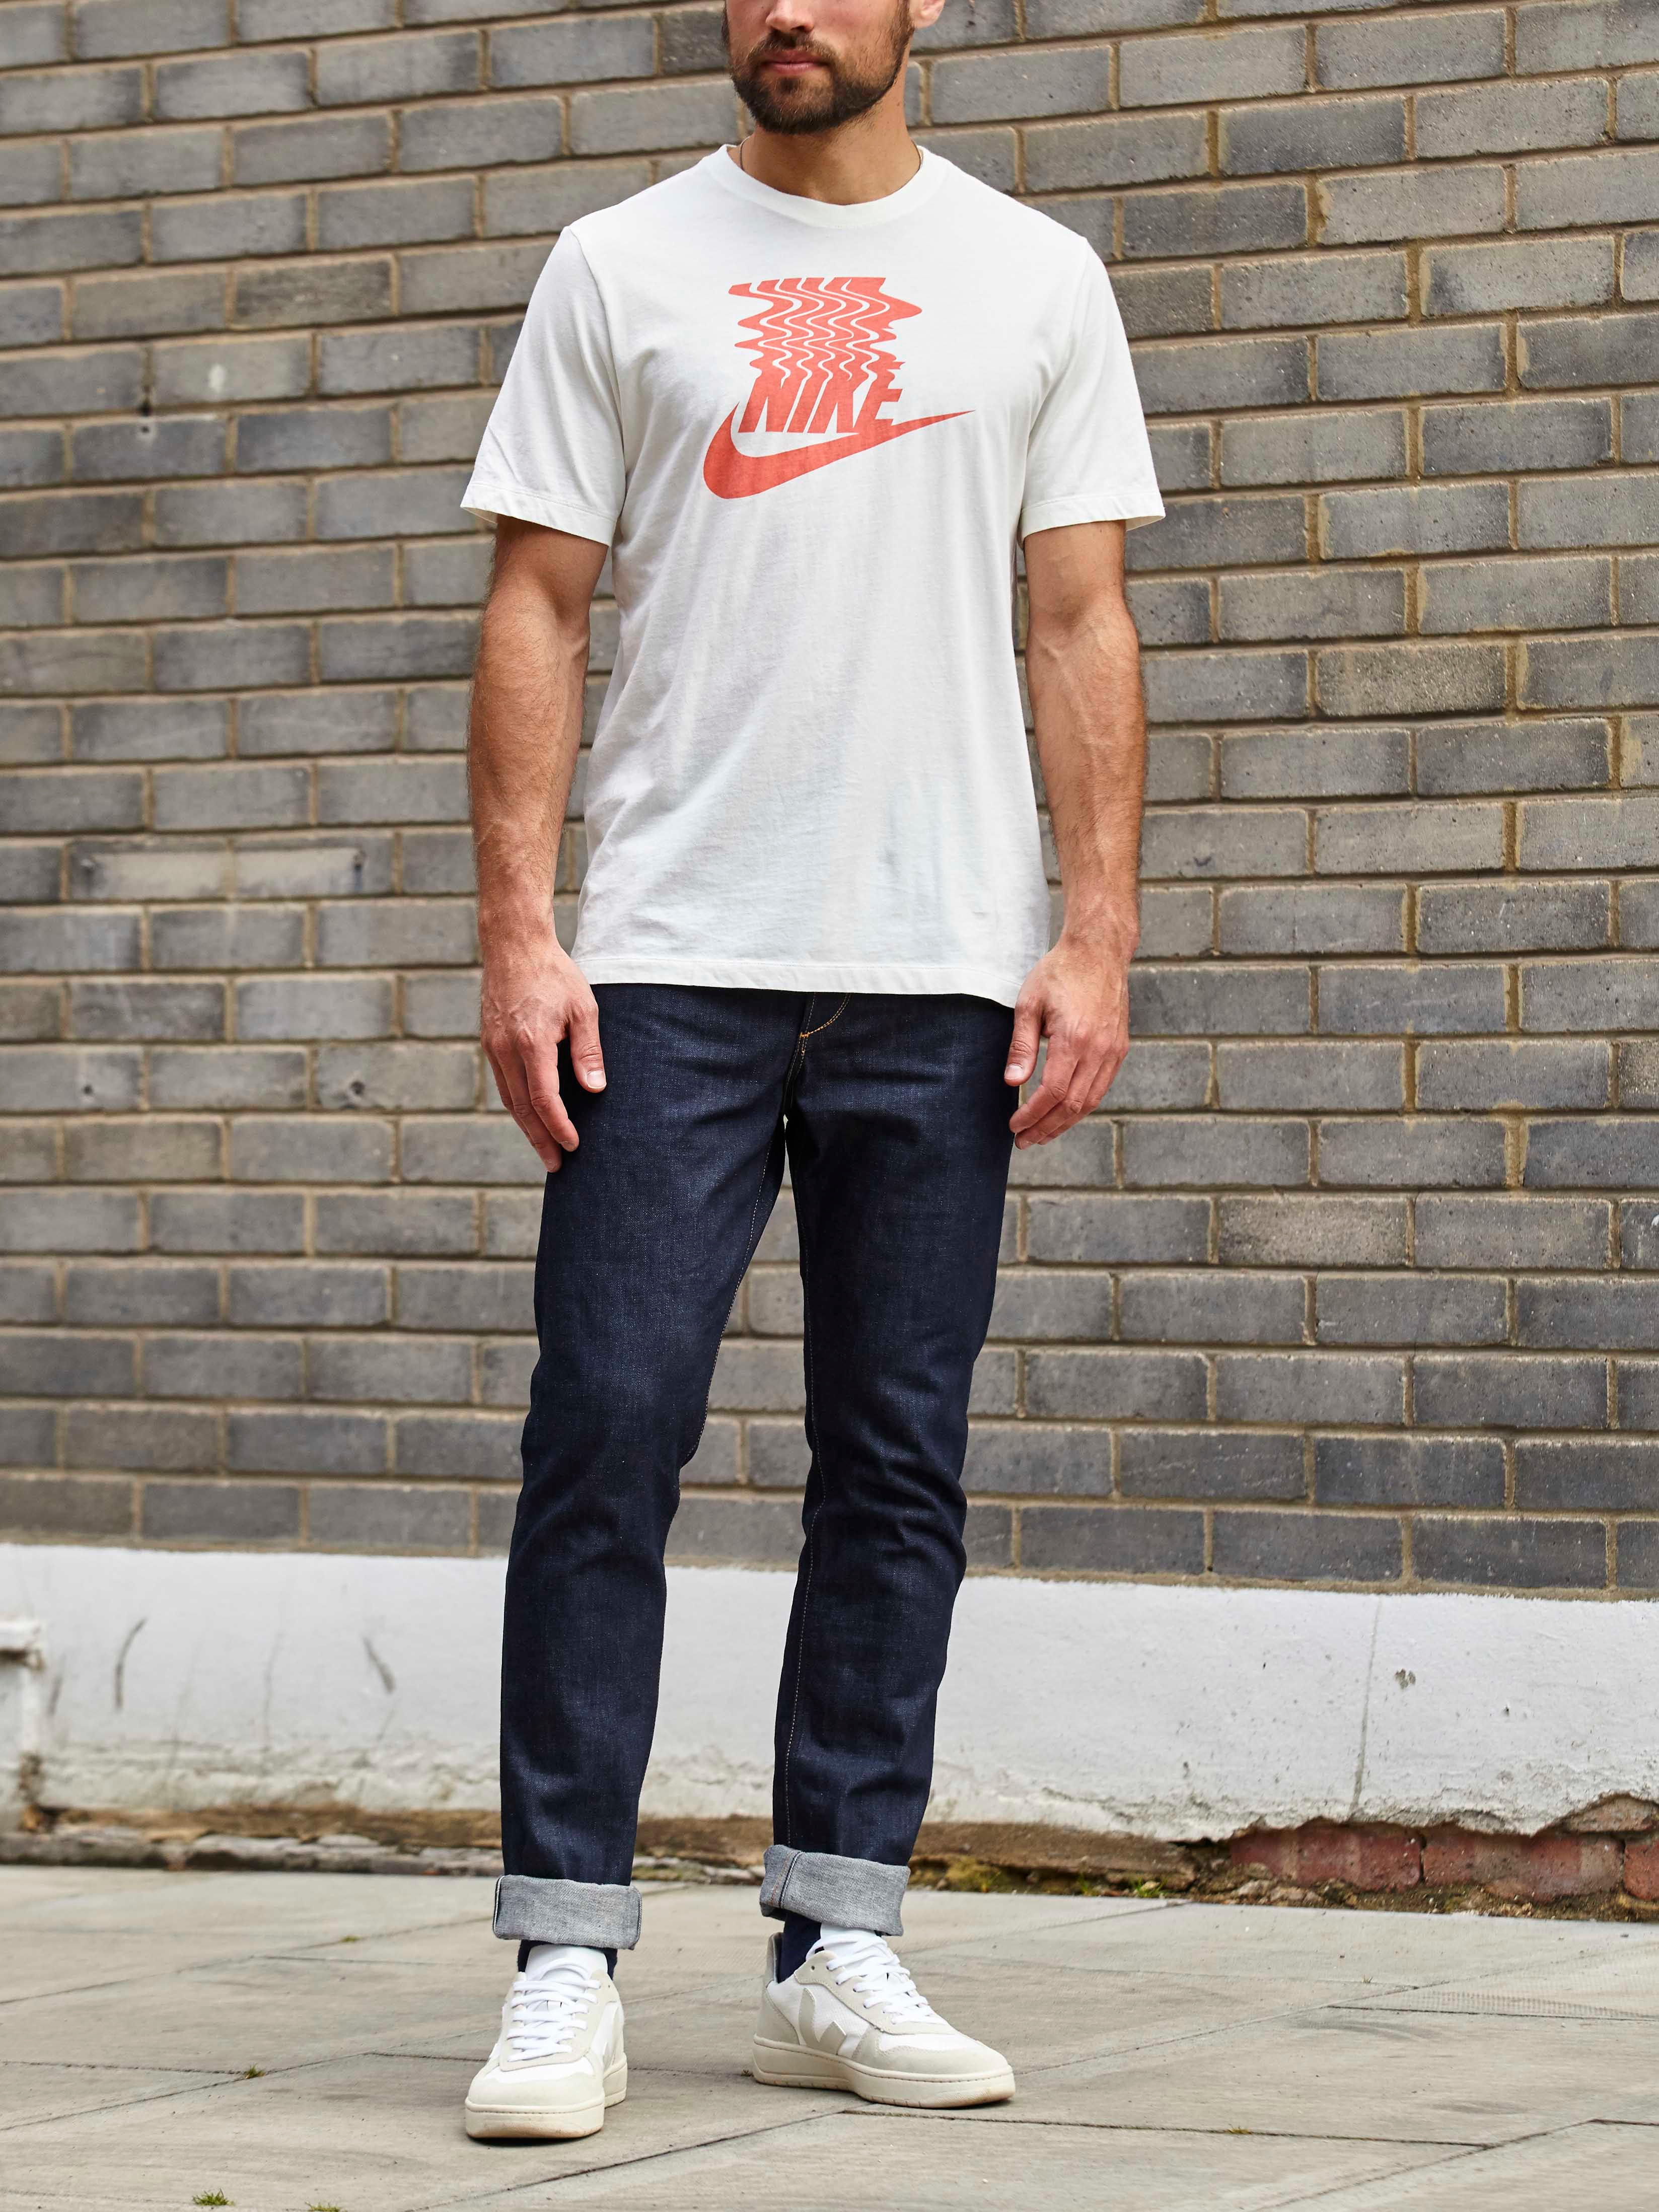 Men's outfit idea for 2021 with logo printed crew neck t-shirt, dark blue jeans, black sunglasses, neutral sneakers. Suitable for summer.